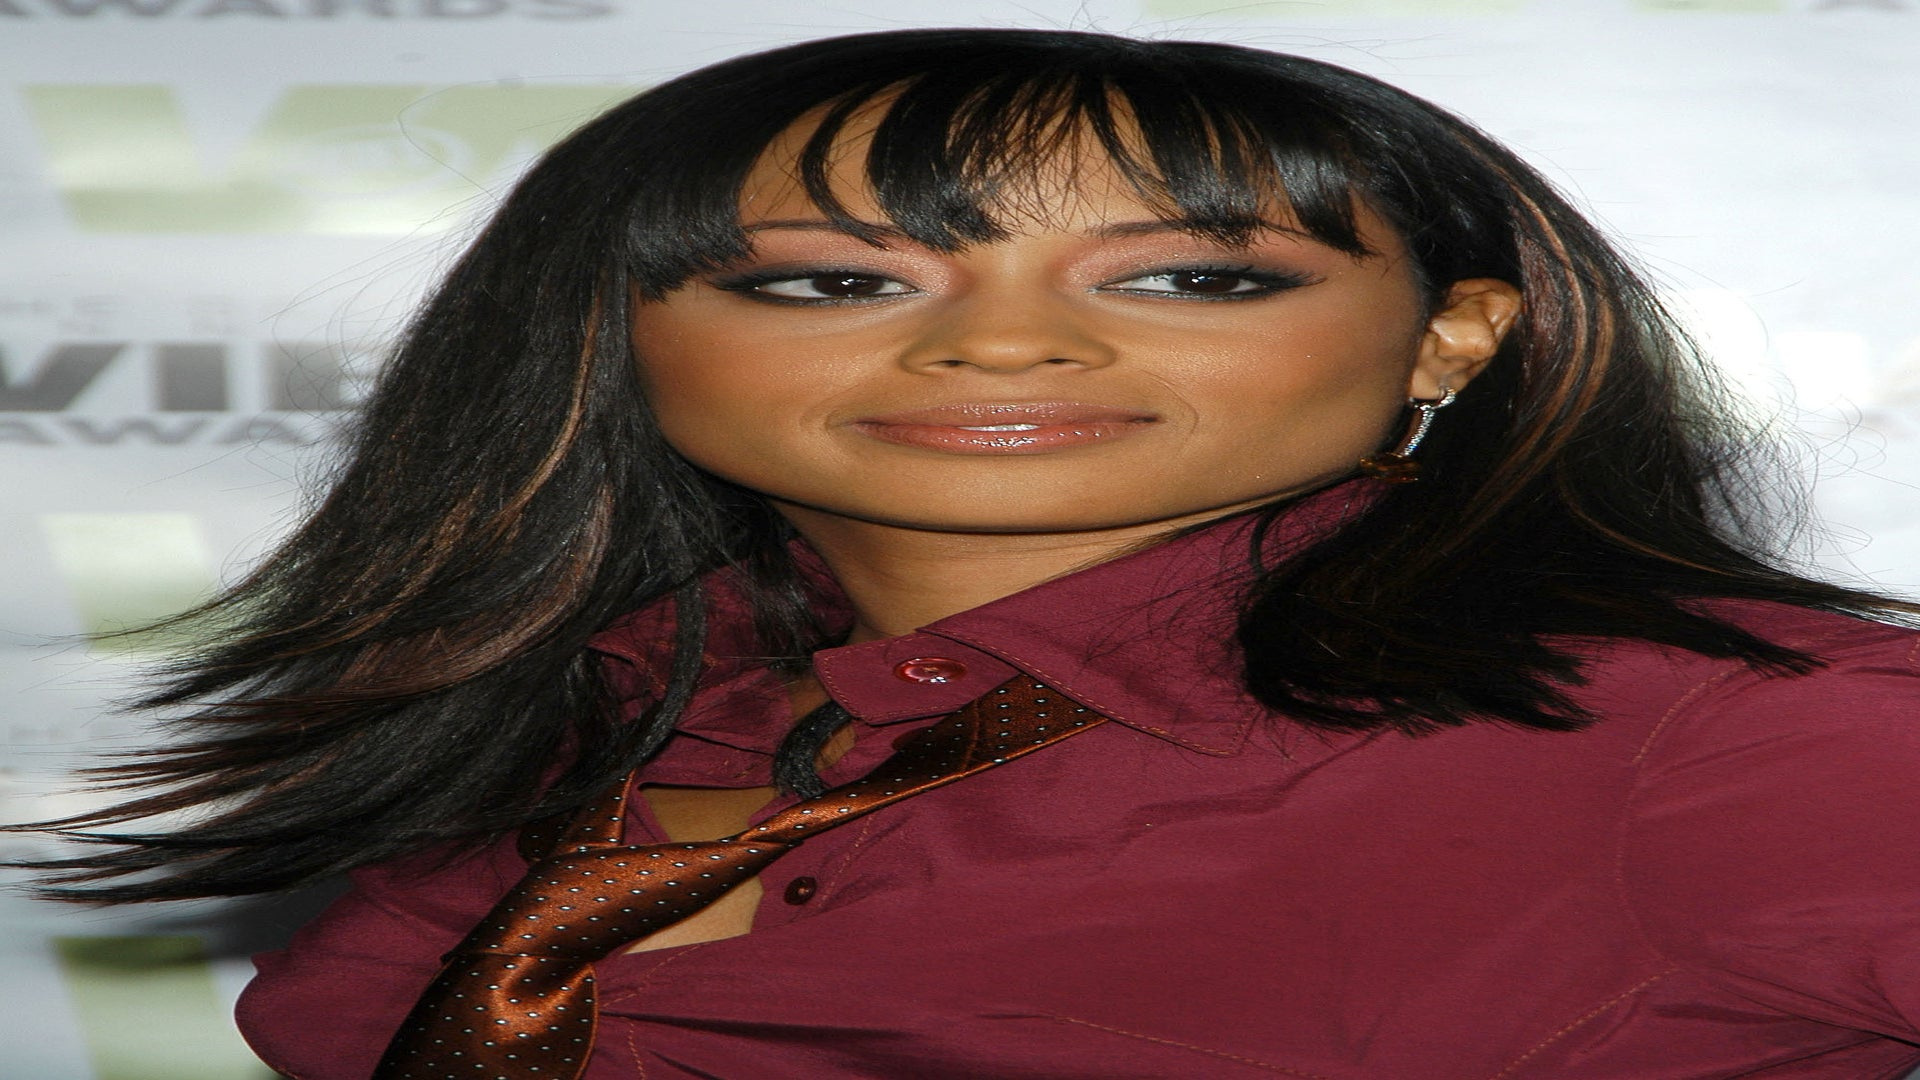 5 Questions with Essence Atkins on Pregnancy, Marriage and Finding Love Online